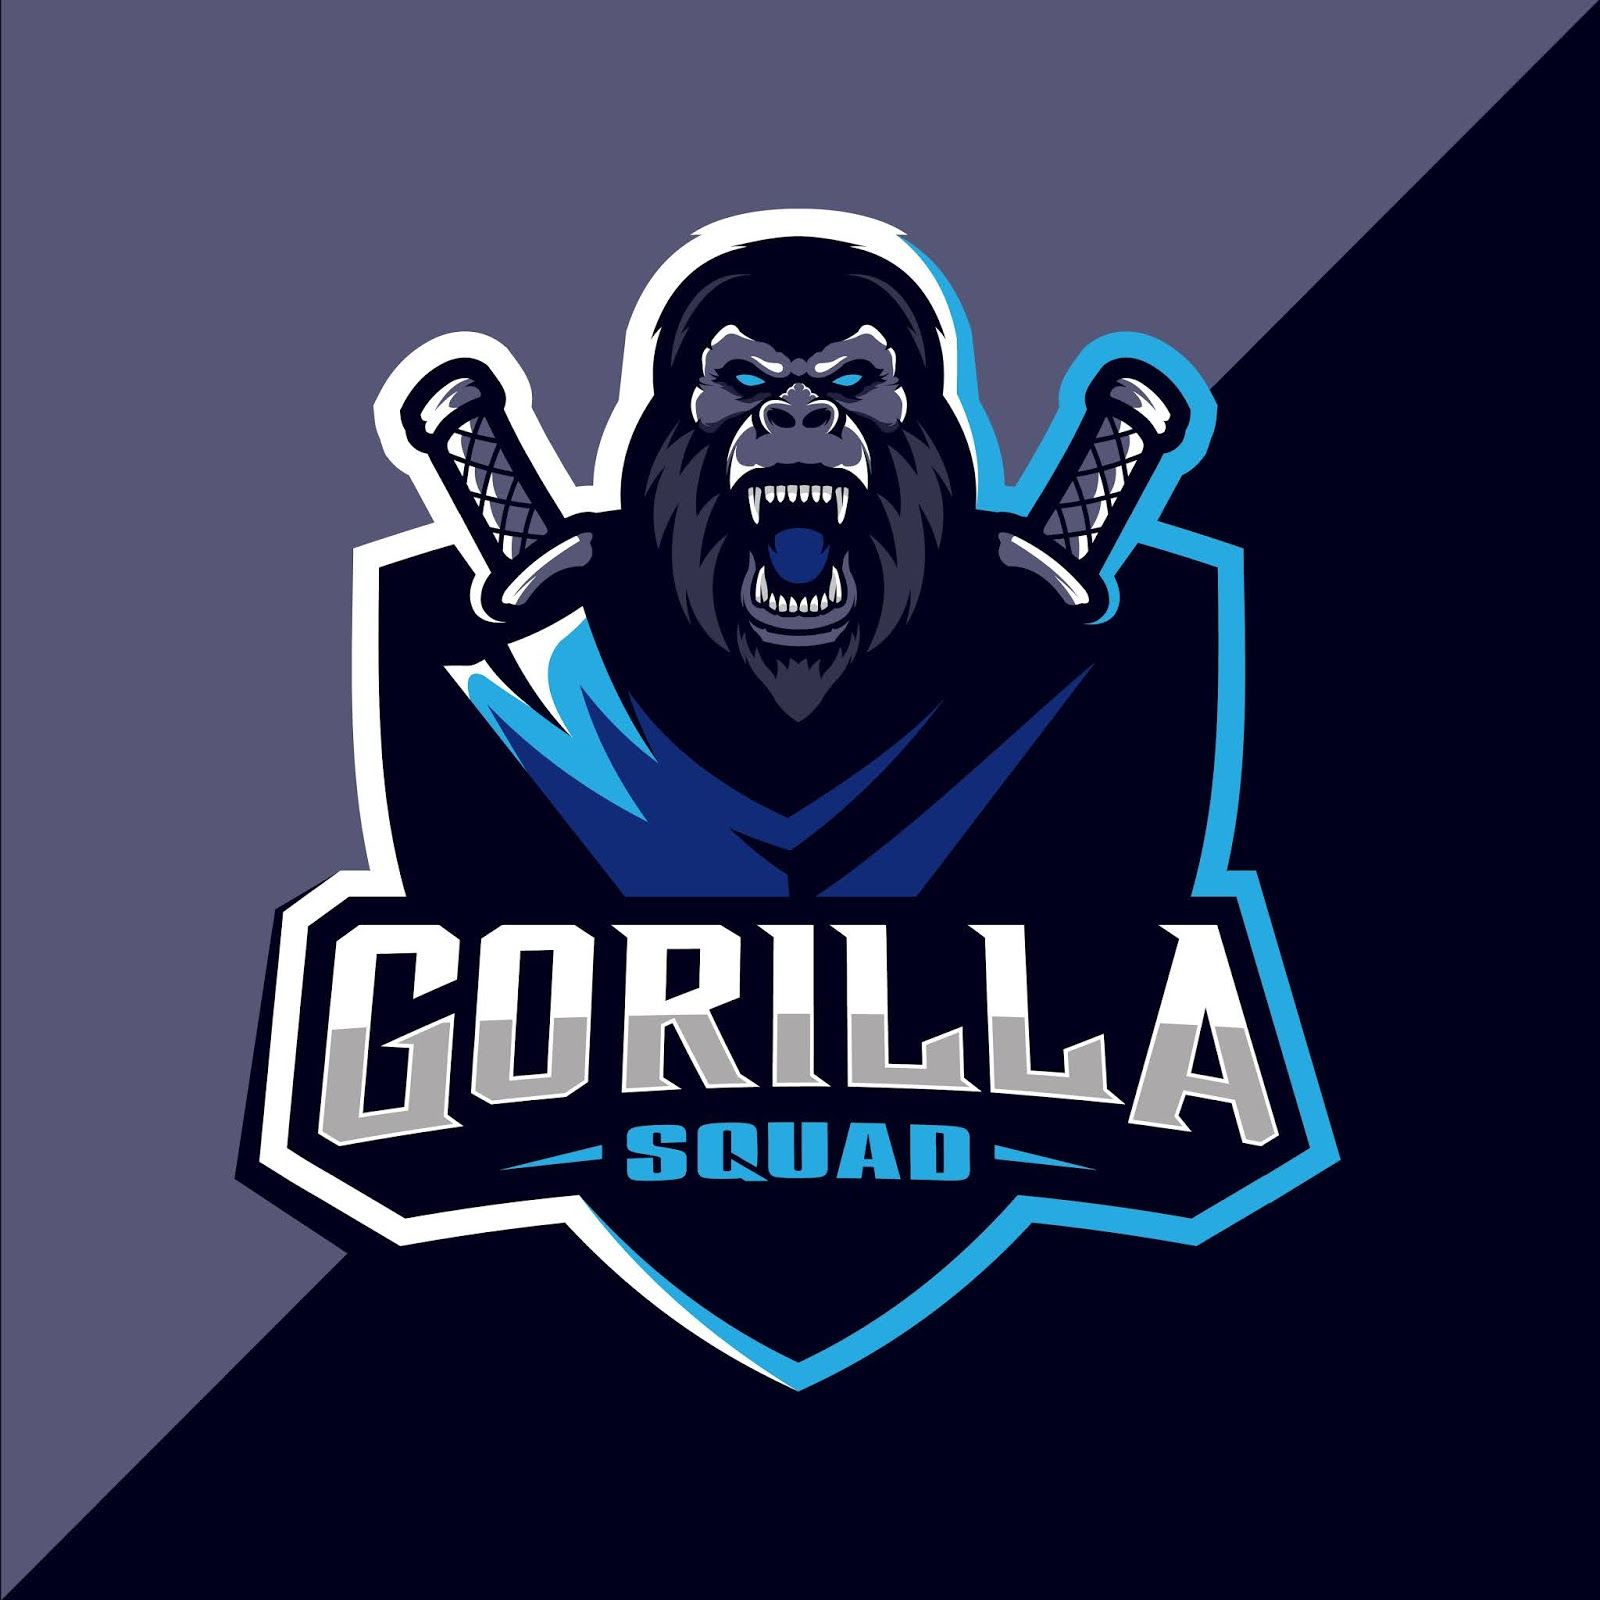 Angry Gorilla Mascot Esport Logo Design Free Download Vector CDR, AI, EPS and PNG Formats